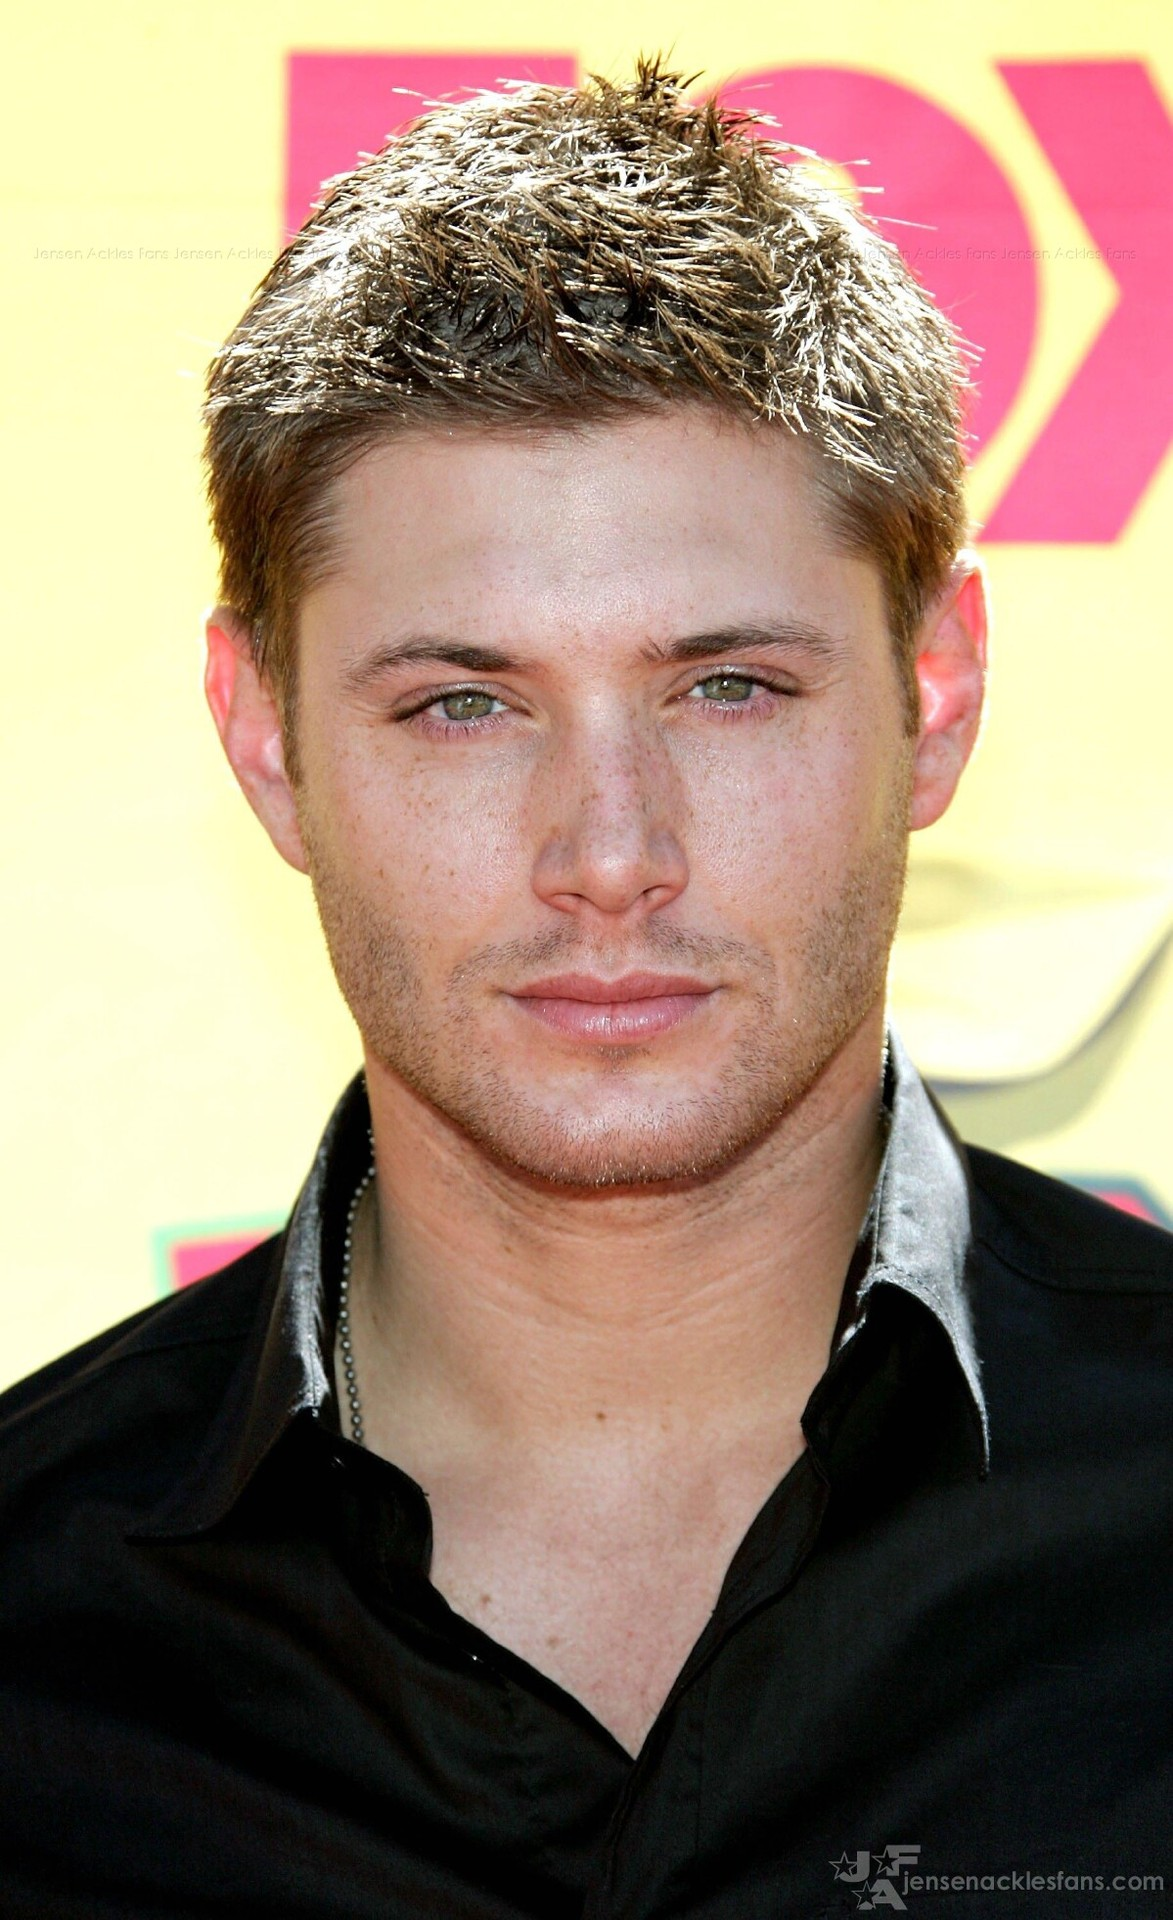 Jensen Ackles - Dean Winchester Photo (478511) - Fanpop